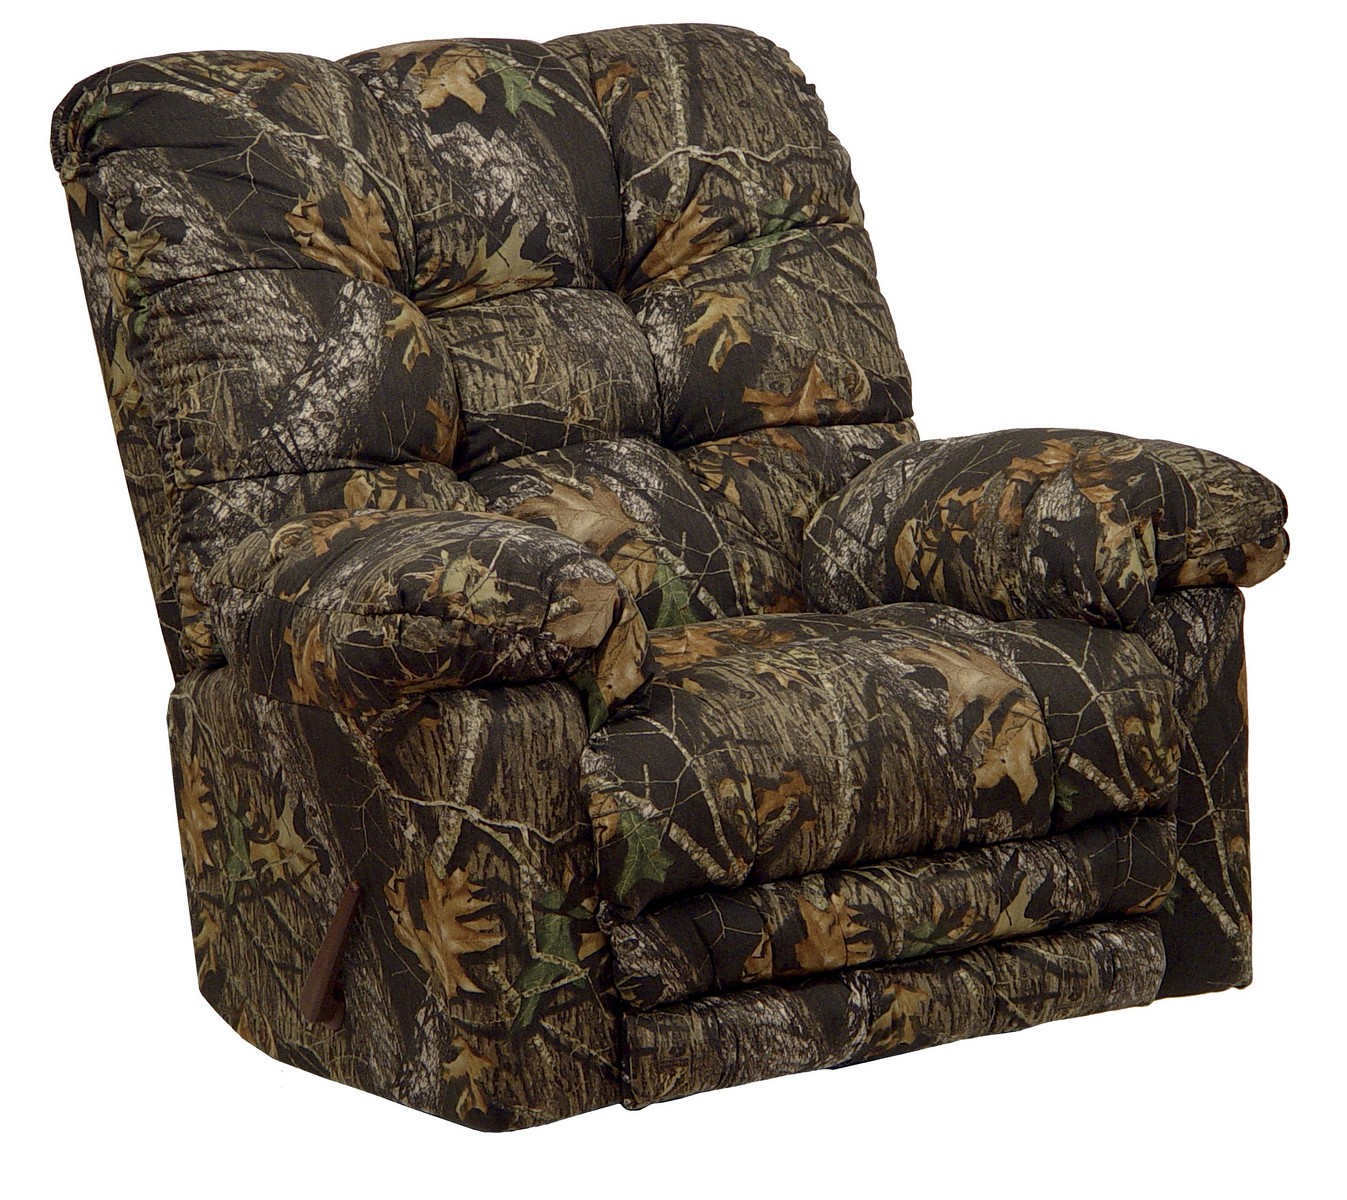 CatNapper Magnum Chaise Rocker Recliner with Heat and Massage - Mossy Oak New Breakup